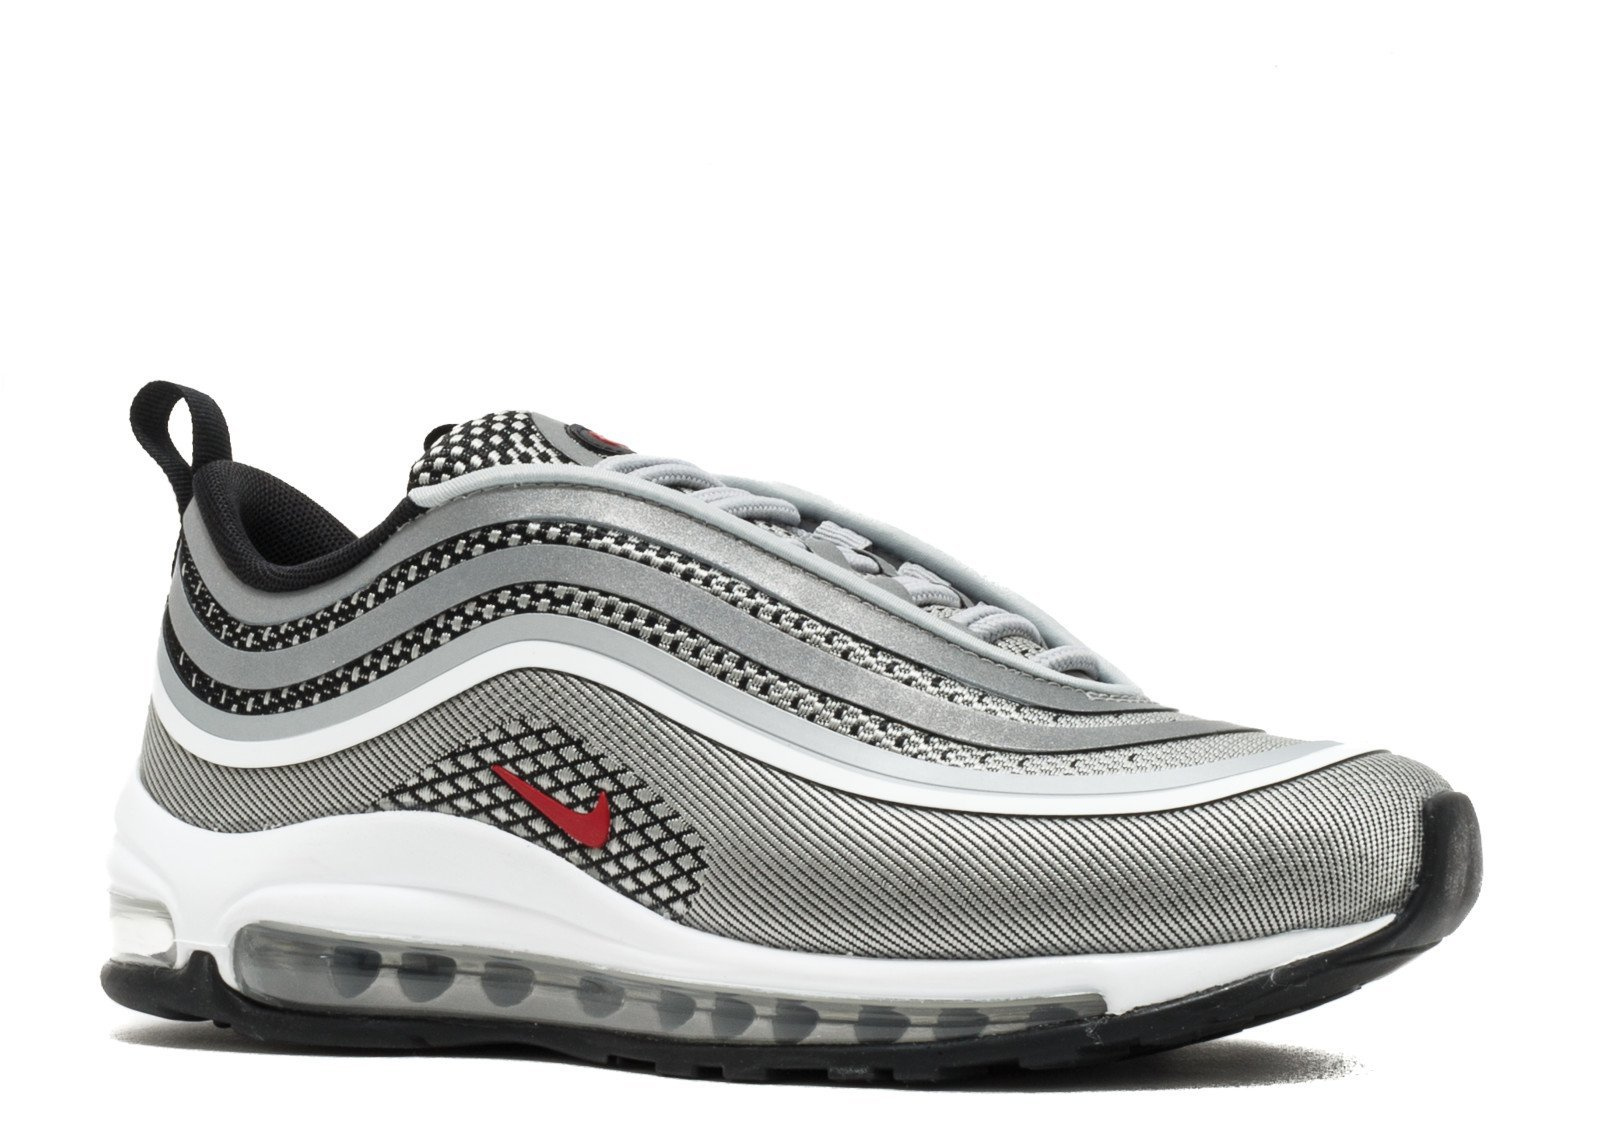 Nike Air Max 97 Ul '17 Womens Style: 917704-002 Size: 8.5 M US